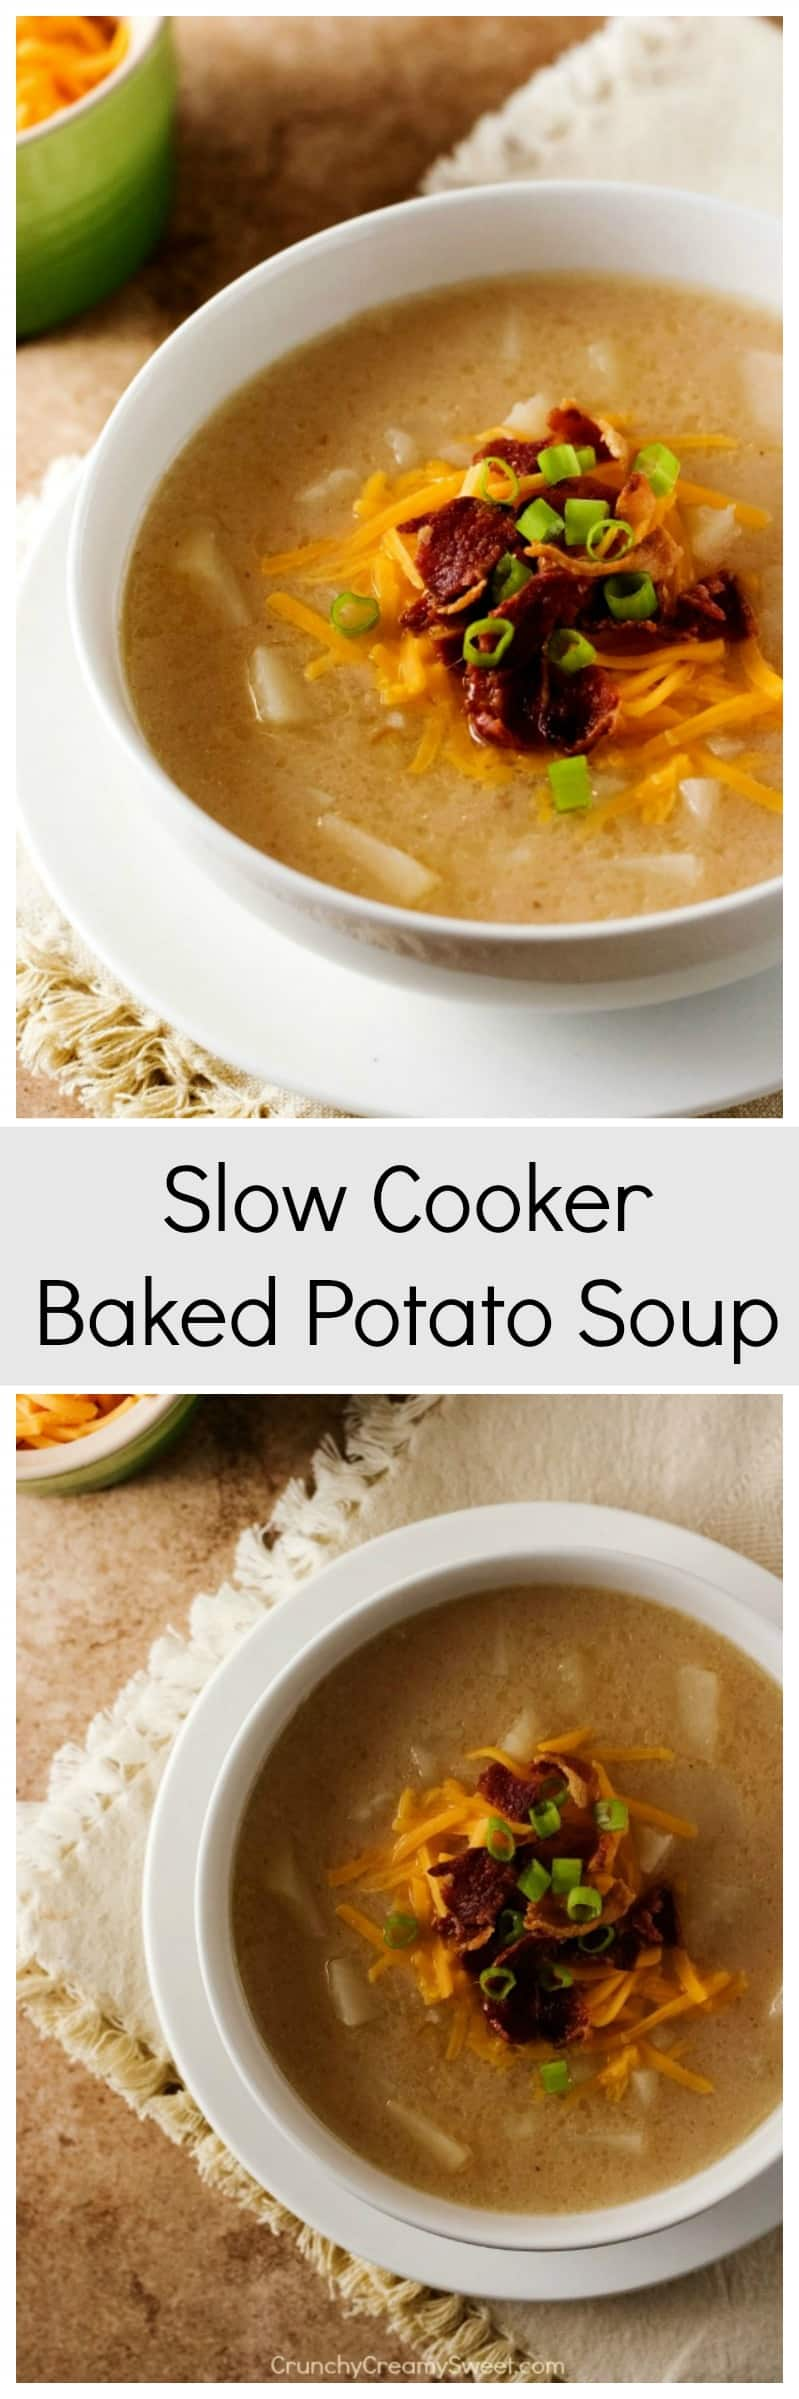 Slow Cooker Baked Potato Soup easy soup yet packed with lots of flavor ...